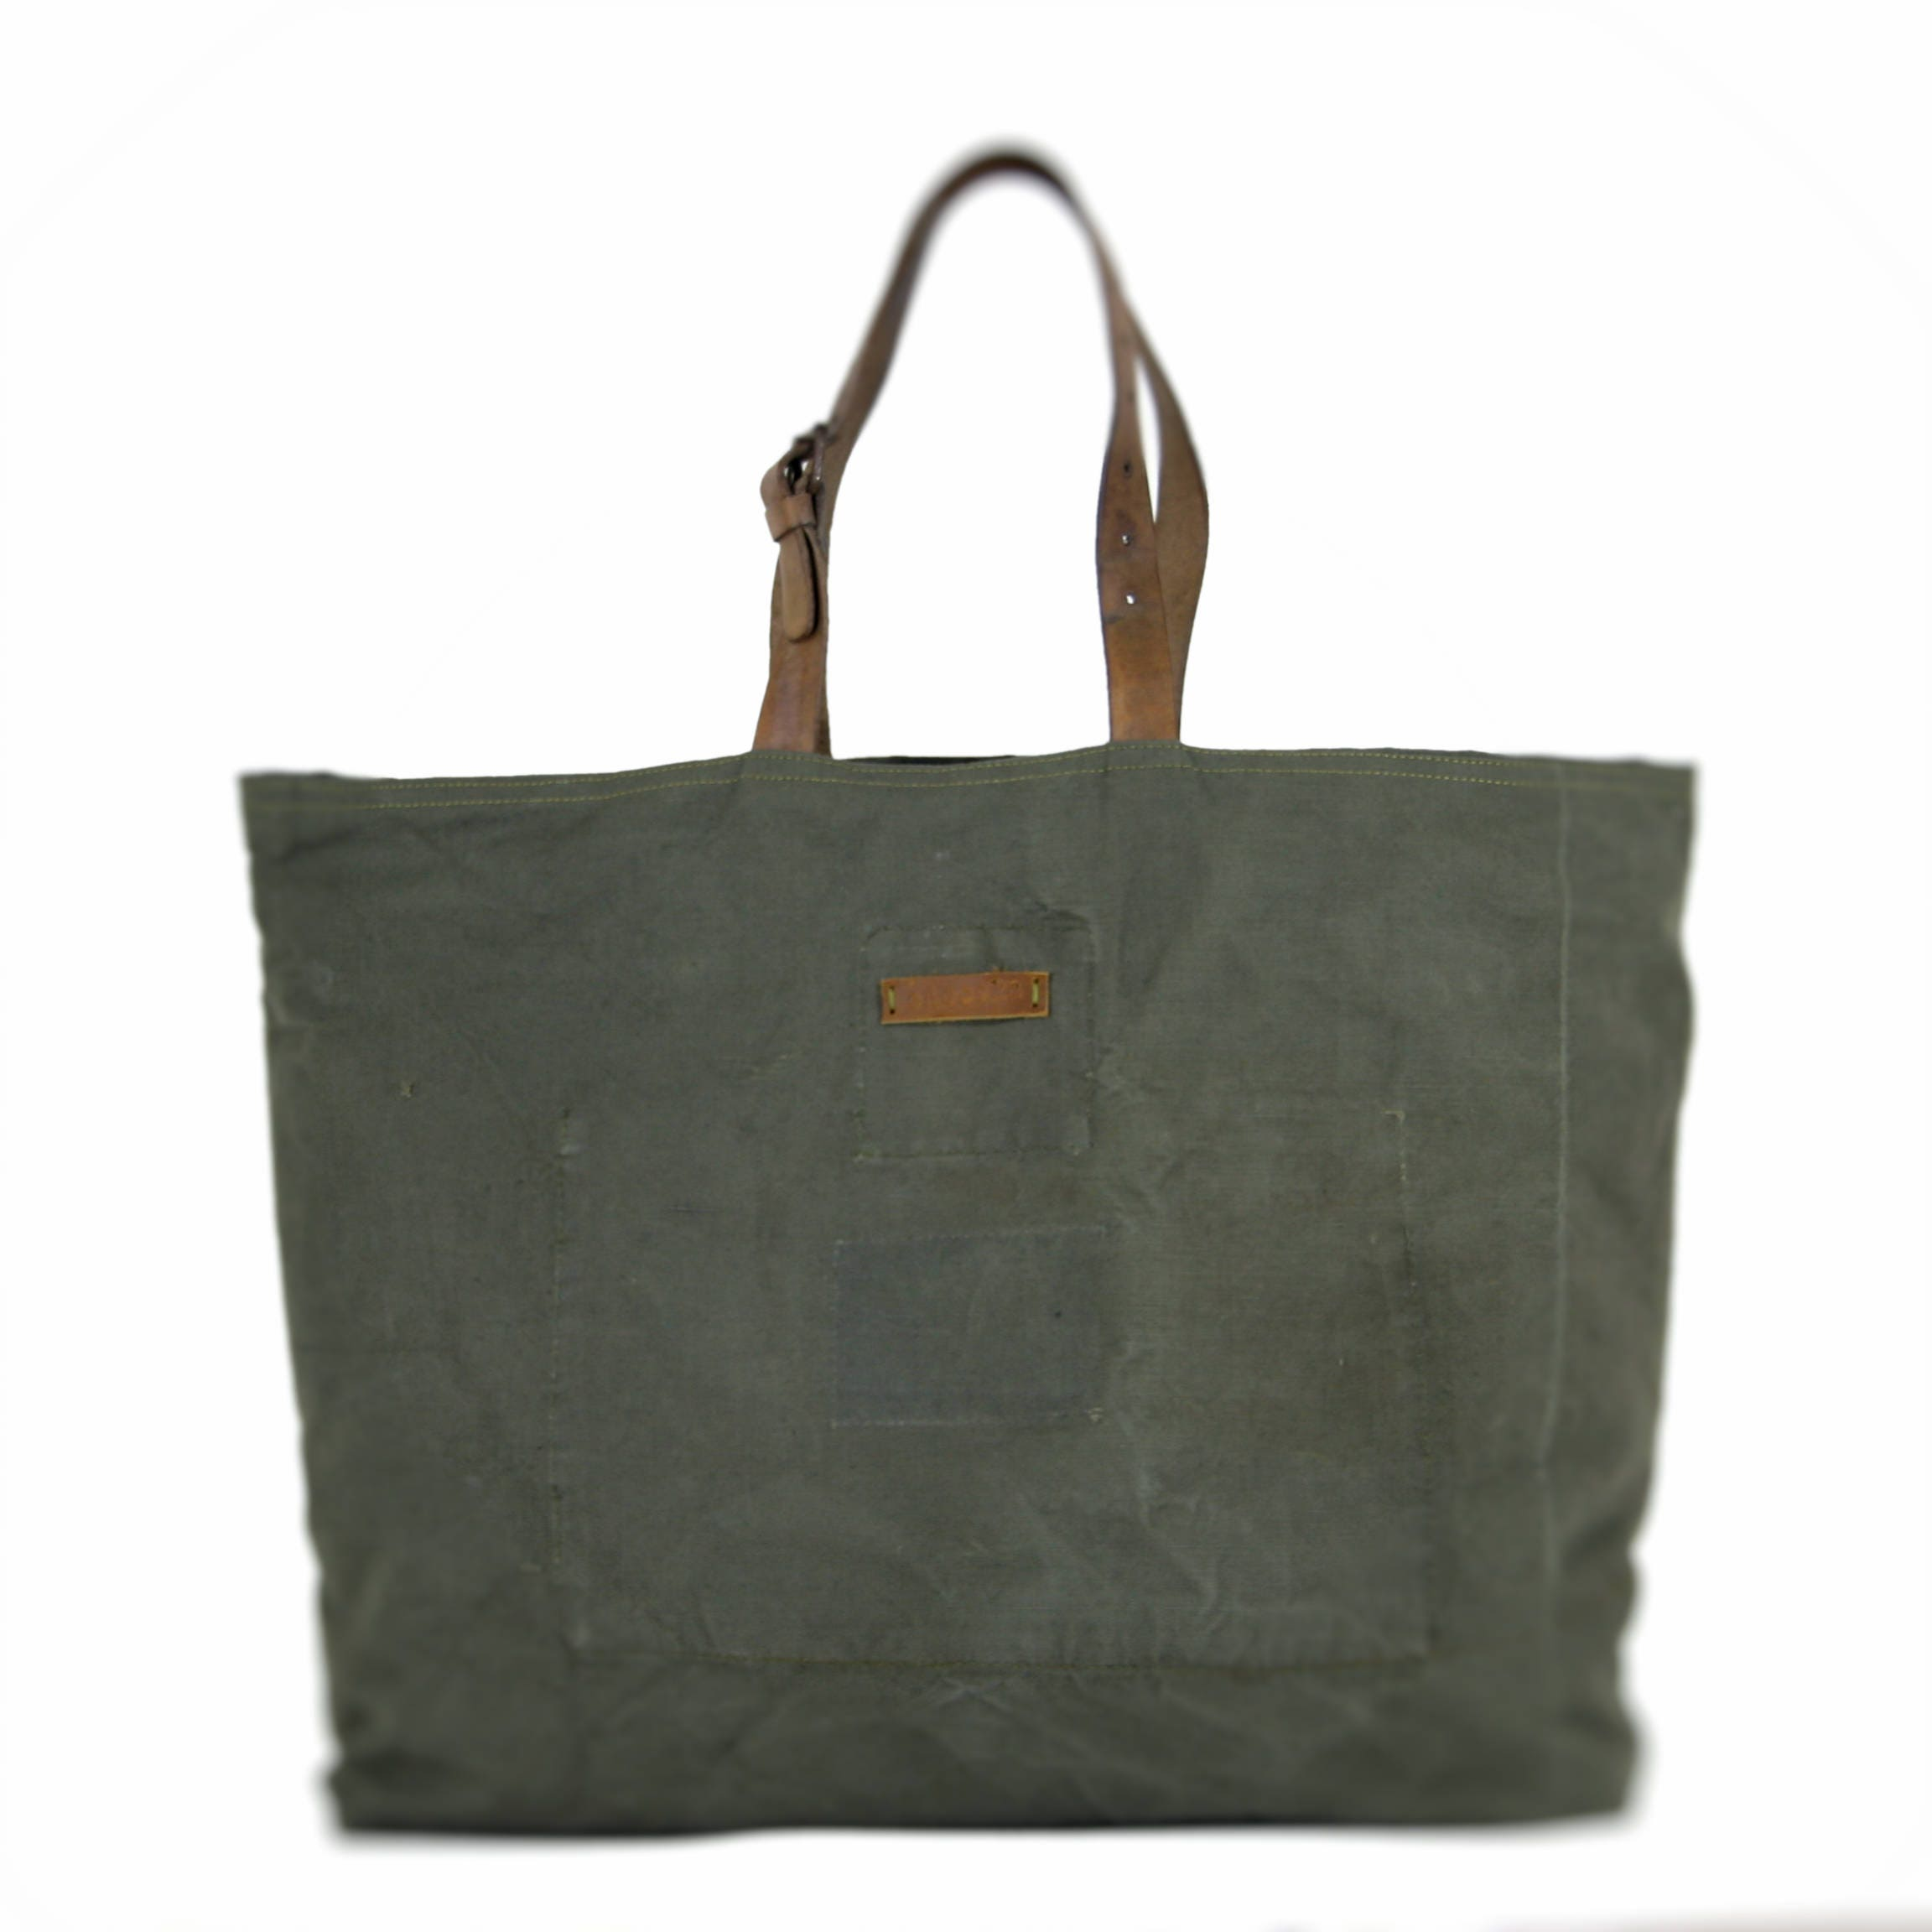 a4a392efcbff6 Canvas Tote Bags With Zip | Stanford Center for Opportunity Policy ...